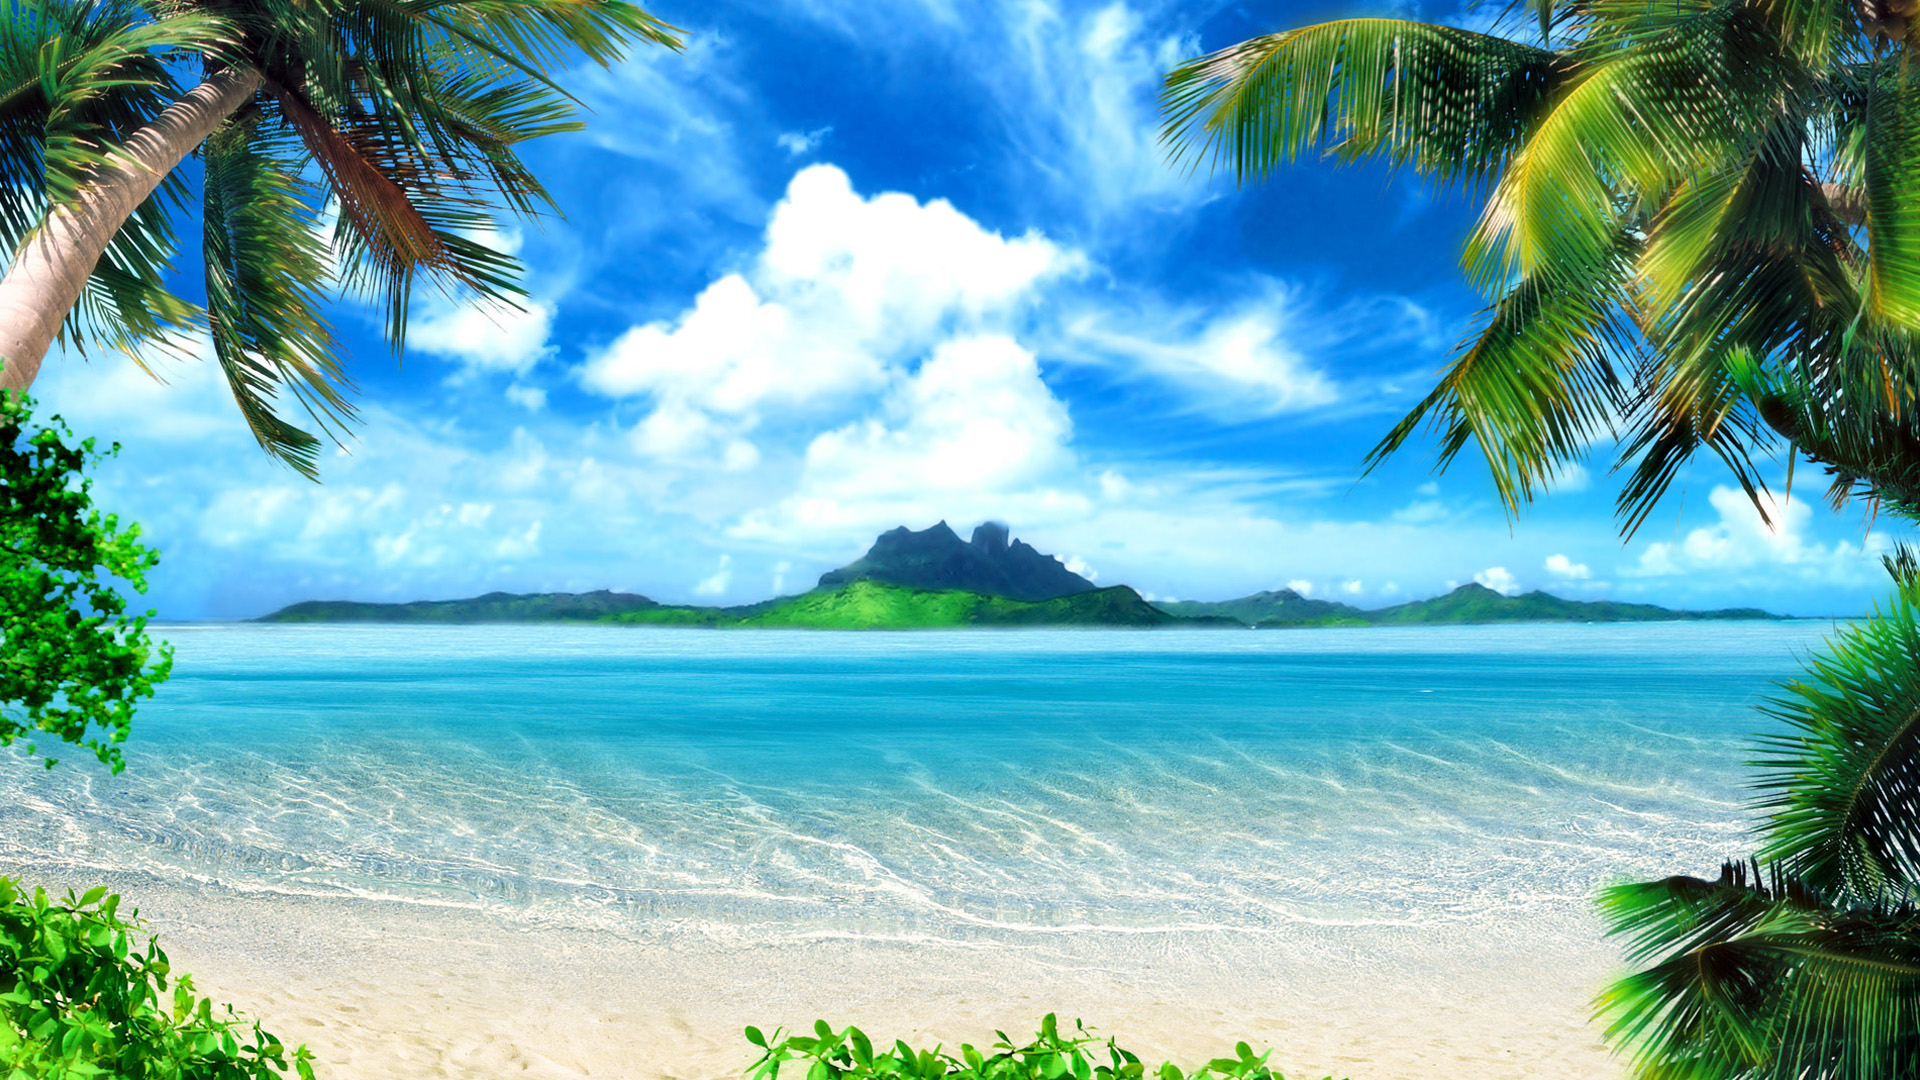 beach scene wallpaper for home - wallpapersafari